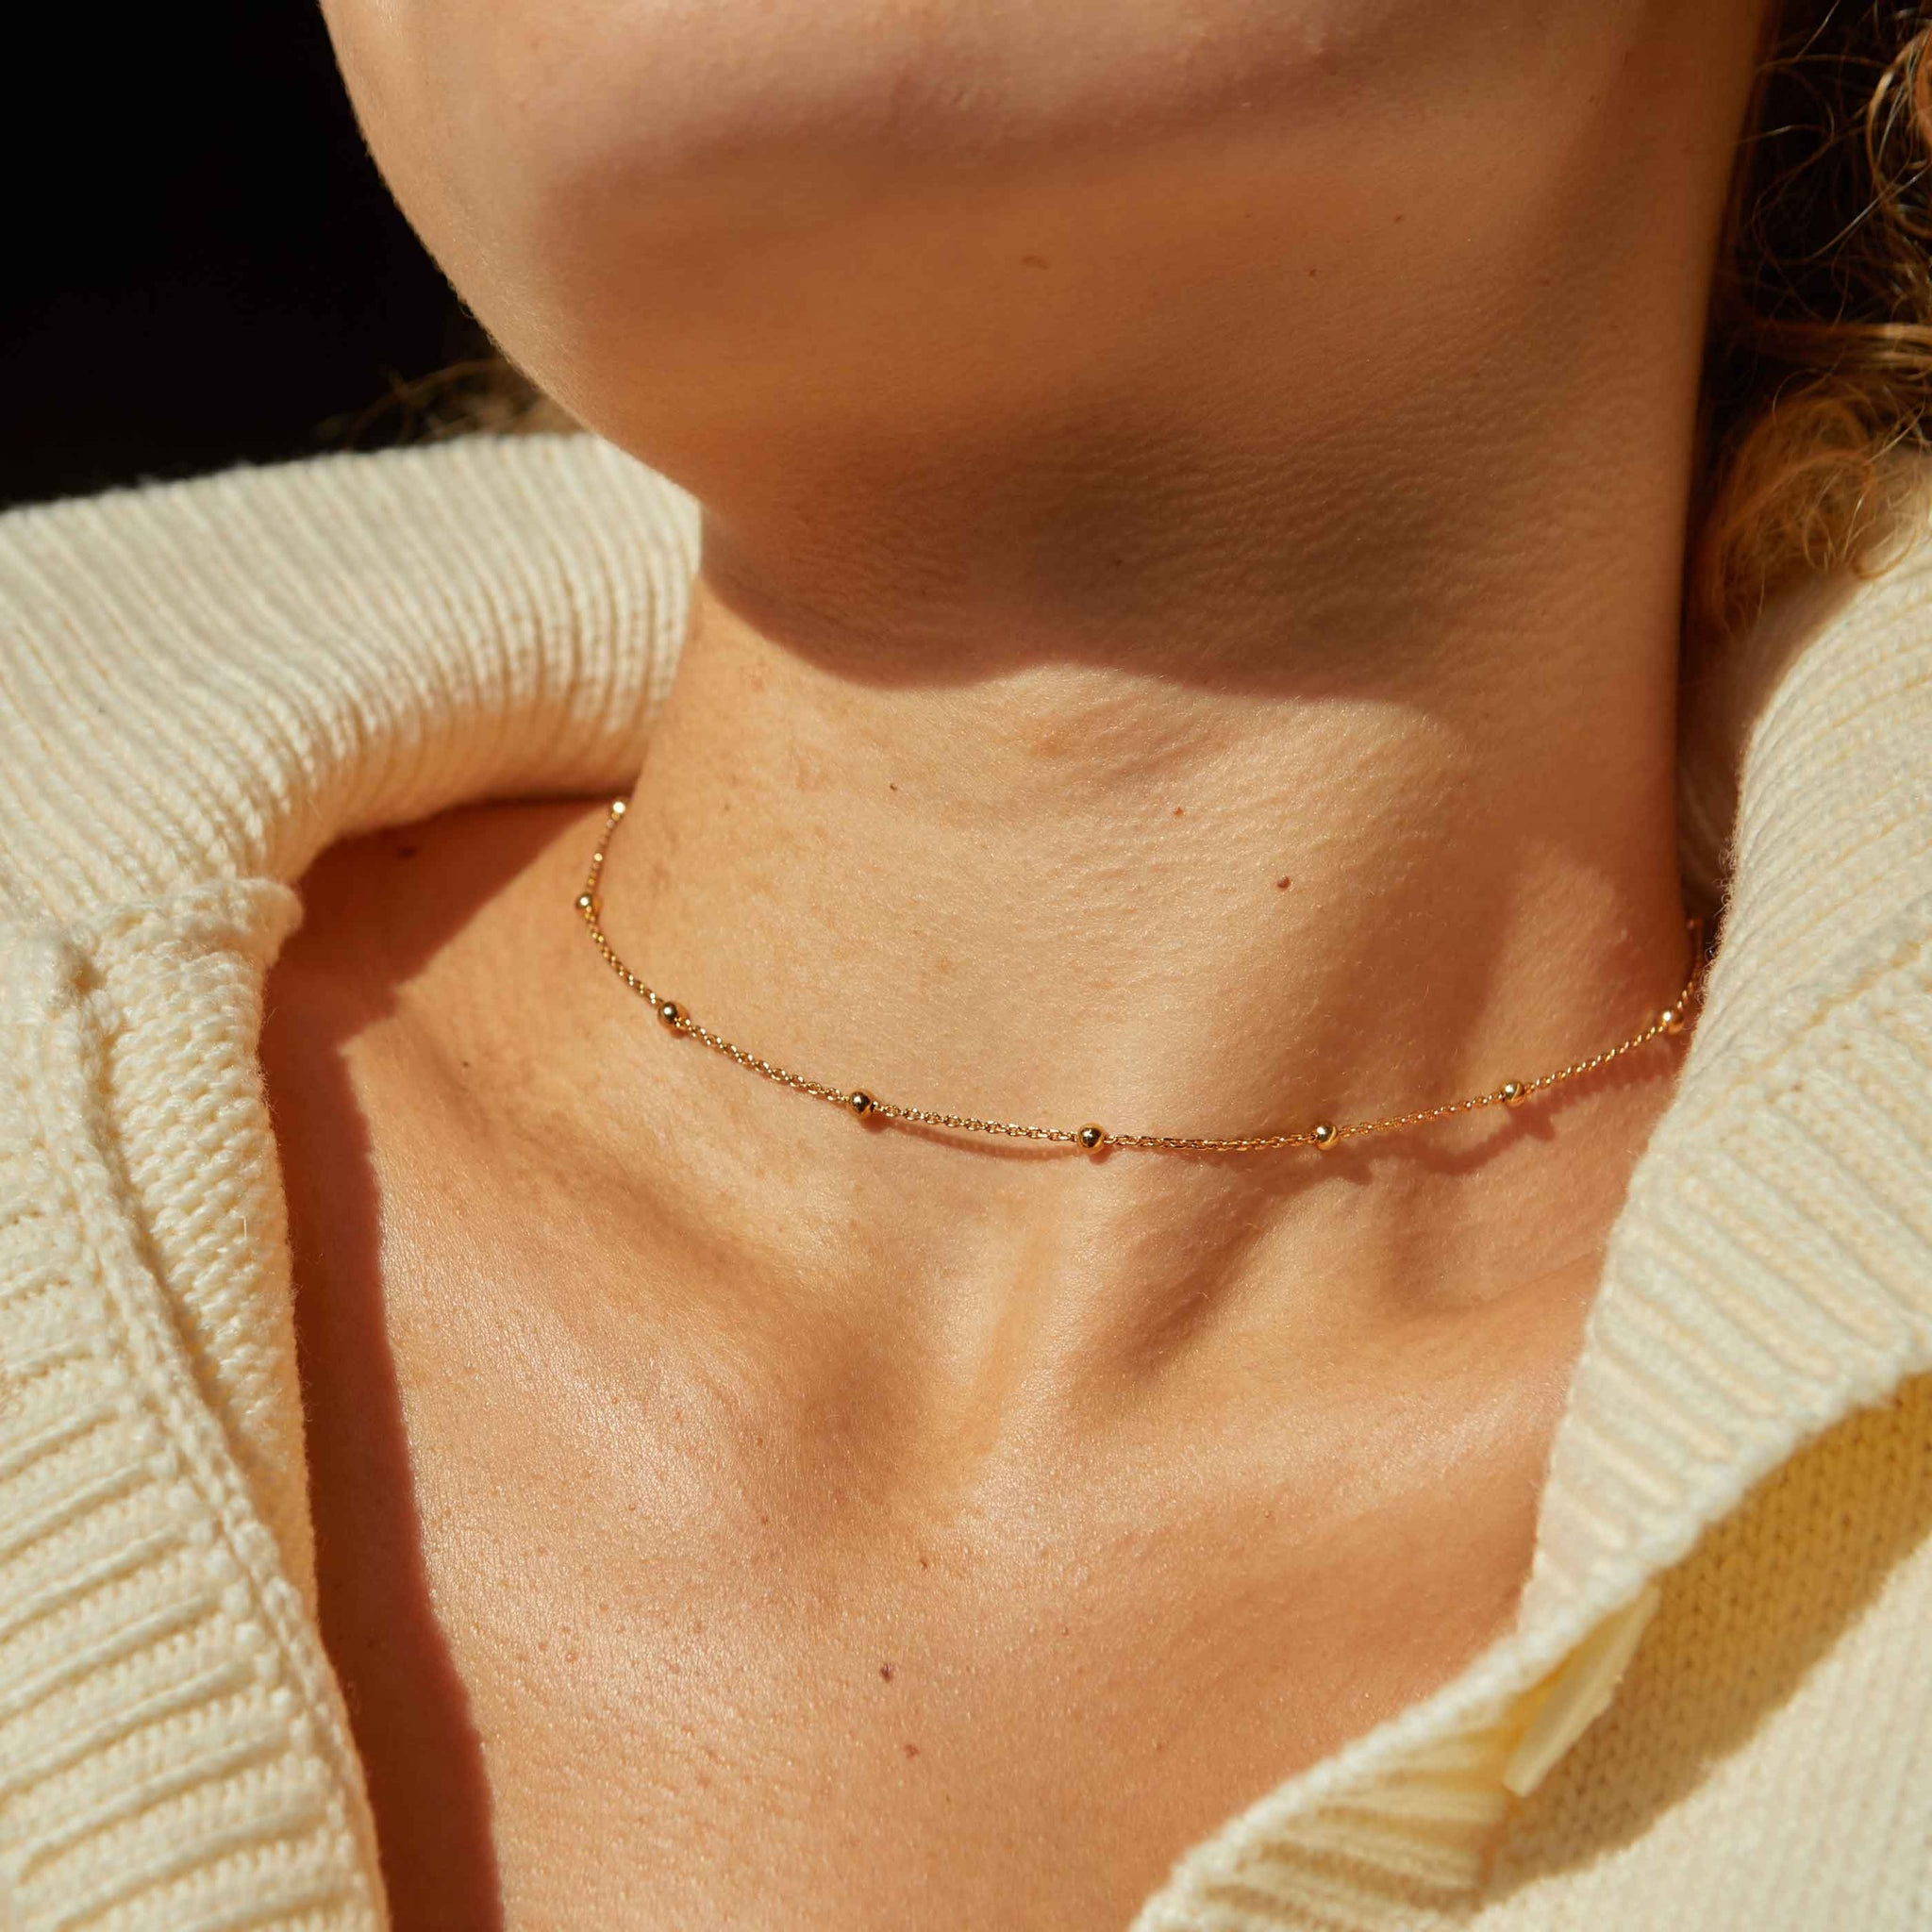 Basic Large Beaded Choker in Gold worn